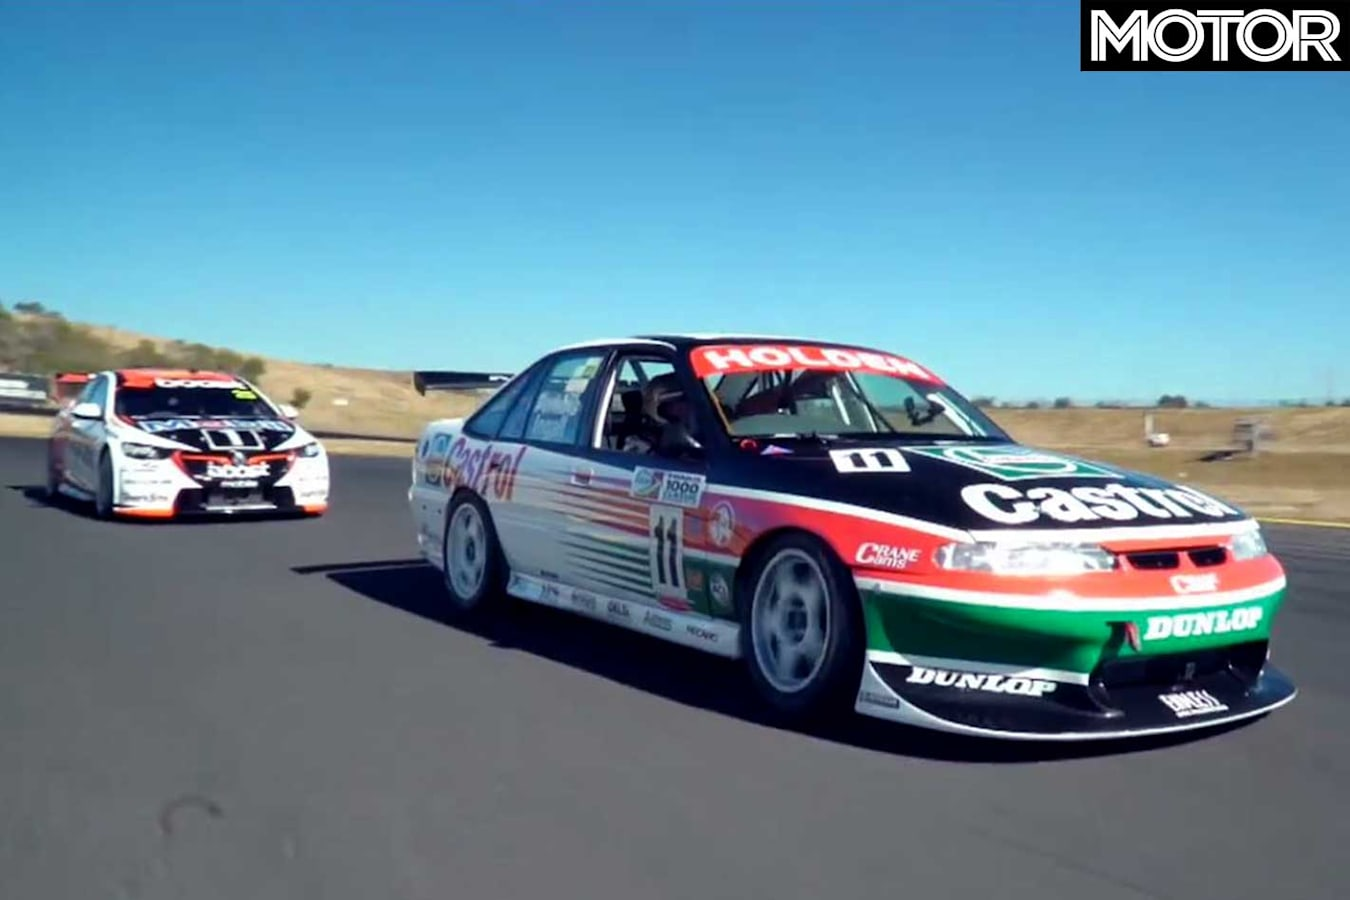 Jack And Larry Perkins Drive 1997 And 2018 Commodore Supercars Video Jpg